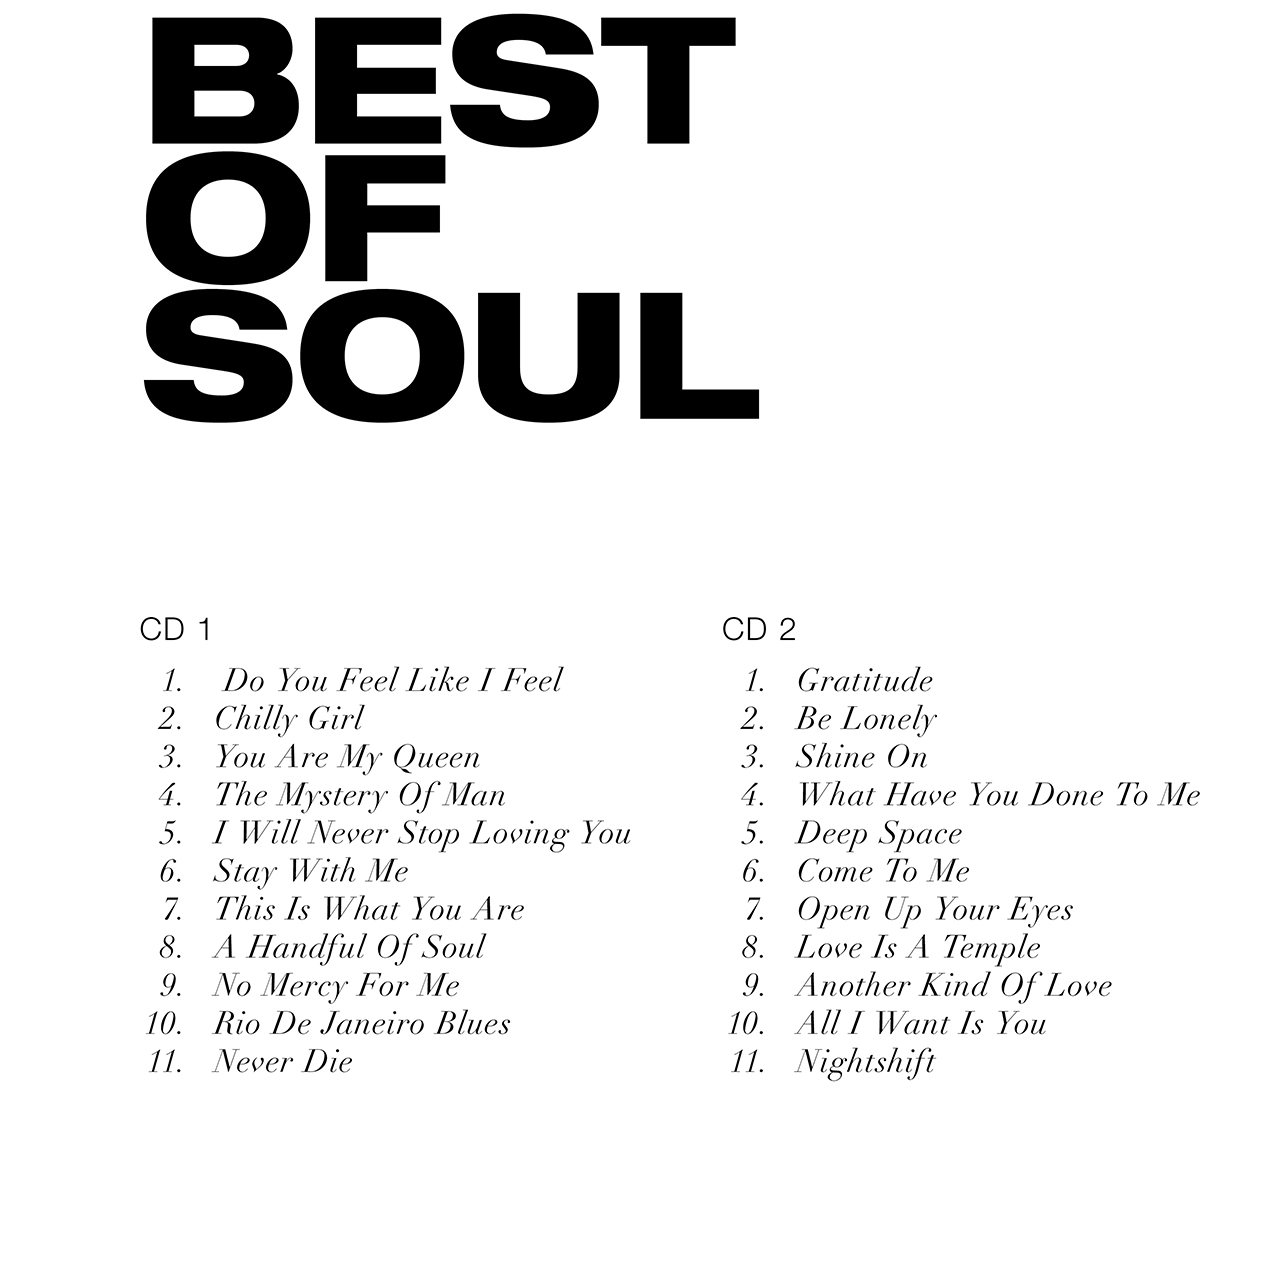 Best of Soul - tracce